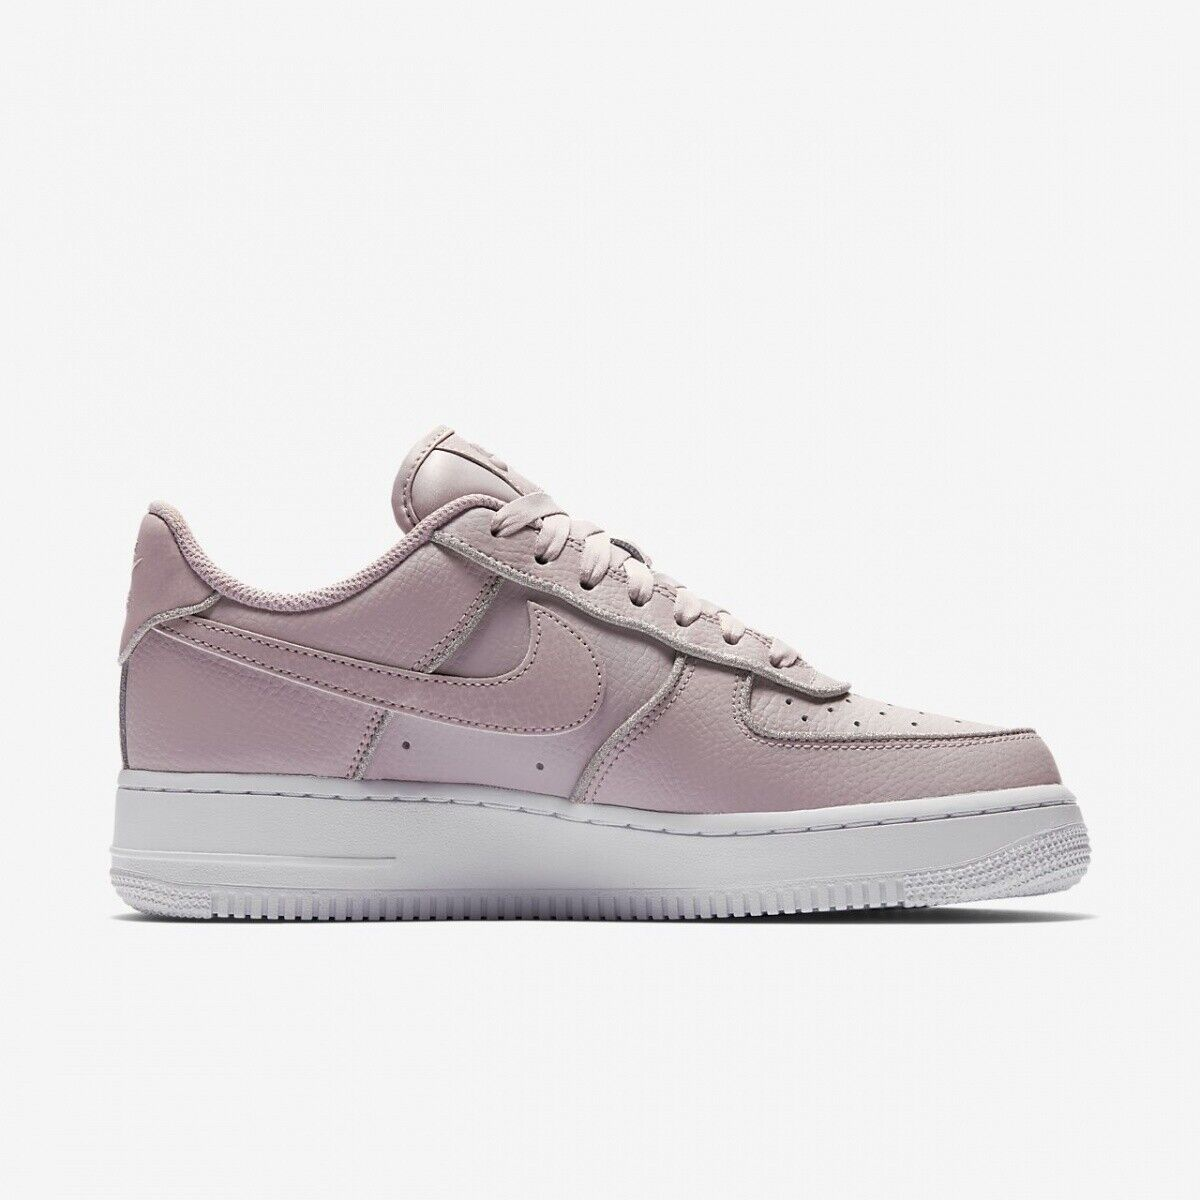 Nike Wmns Air Force 1 Lo Particle pink White AT0073-600 Size 5.5 UK